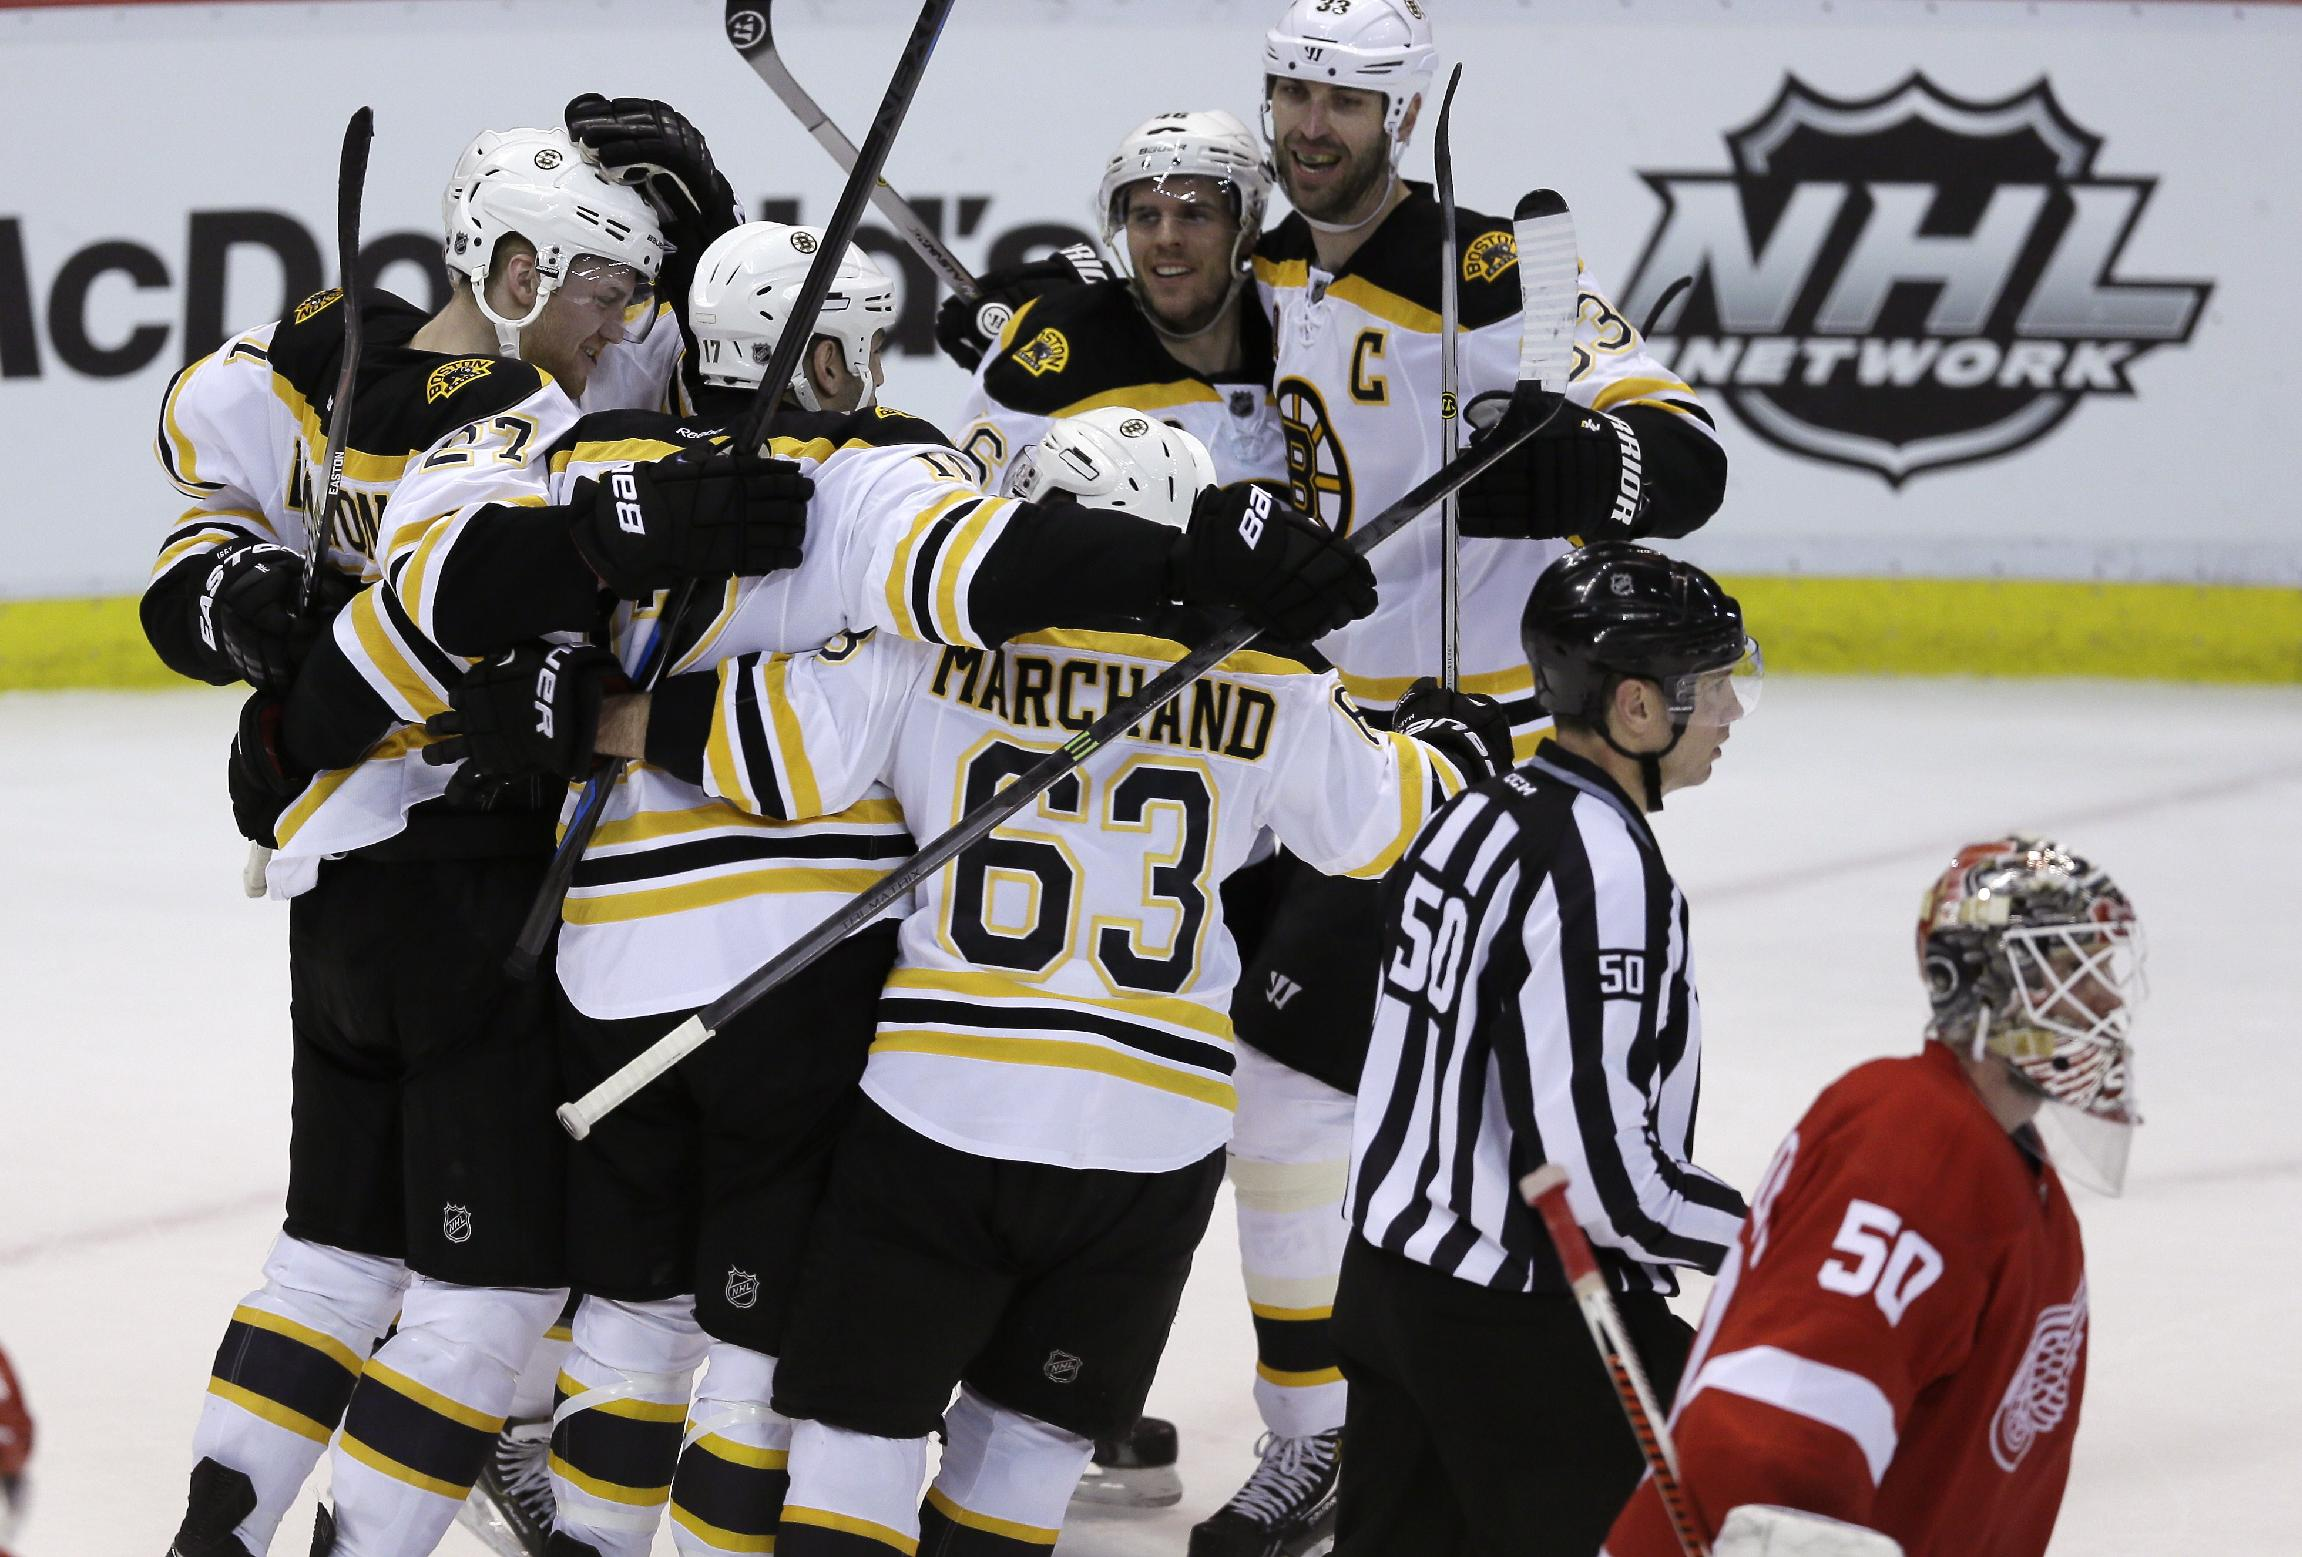 Bruins beat Red Wings 3-2 in OT, up 3-1 in series